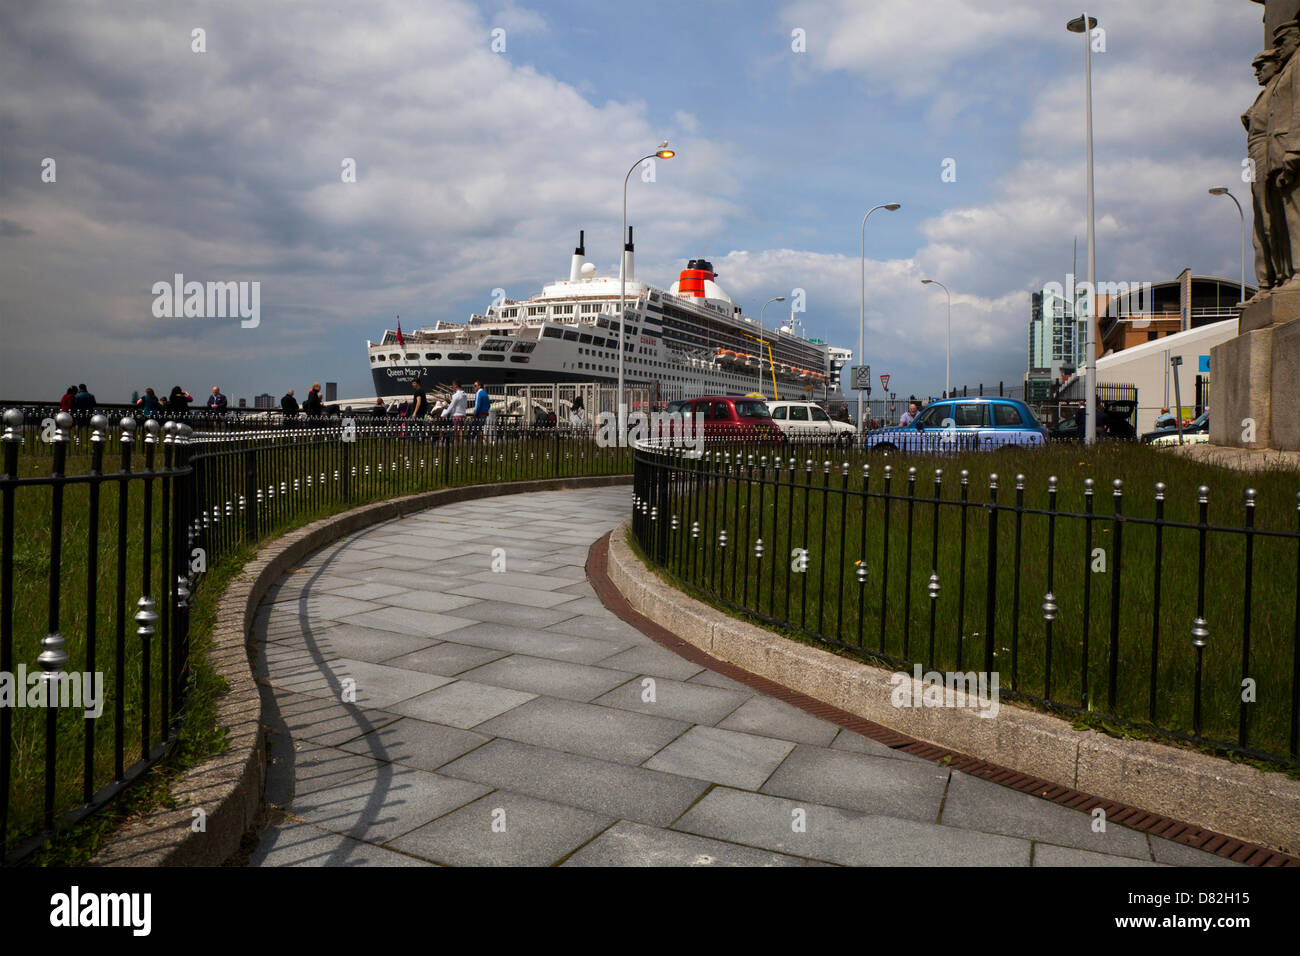 Liverpool, UK 17th May, 2013. The Cruise Liner Terminal where the luixury  Passenger ship registered in Bermuda - Stock Image